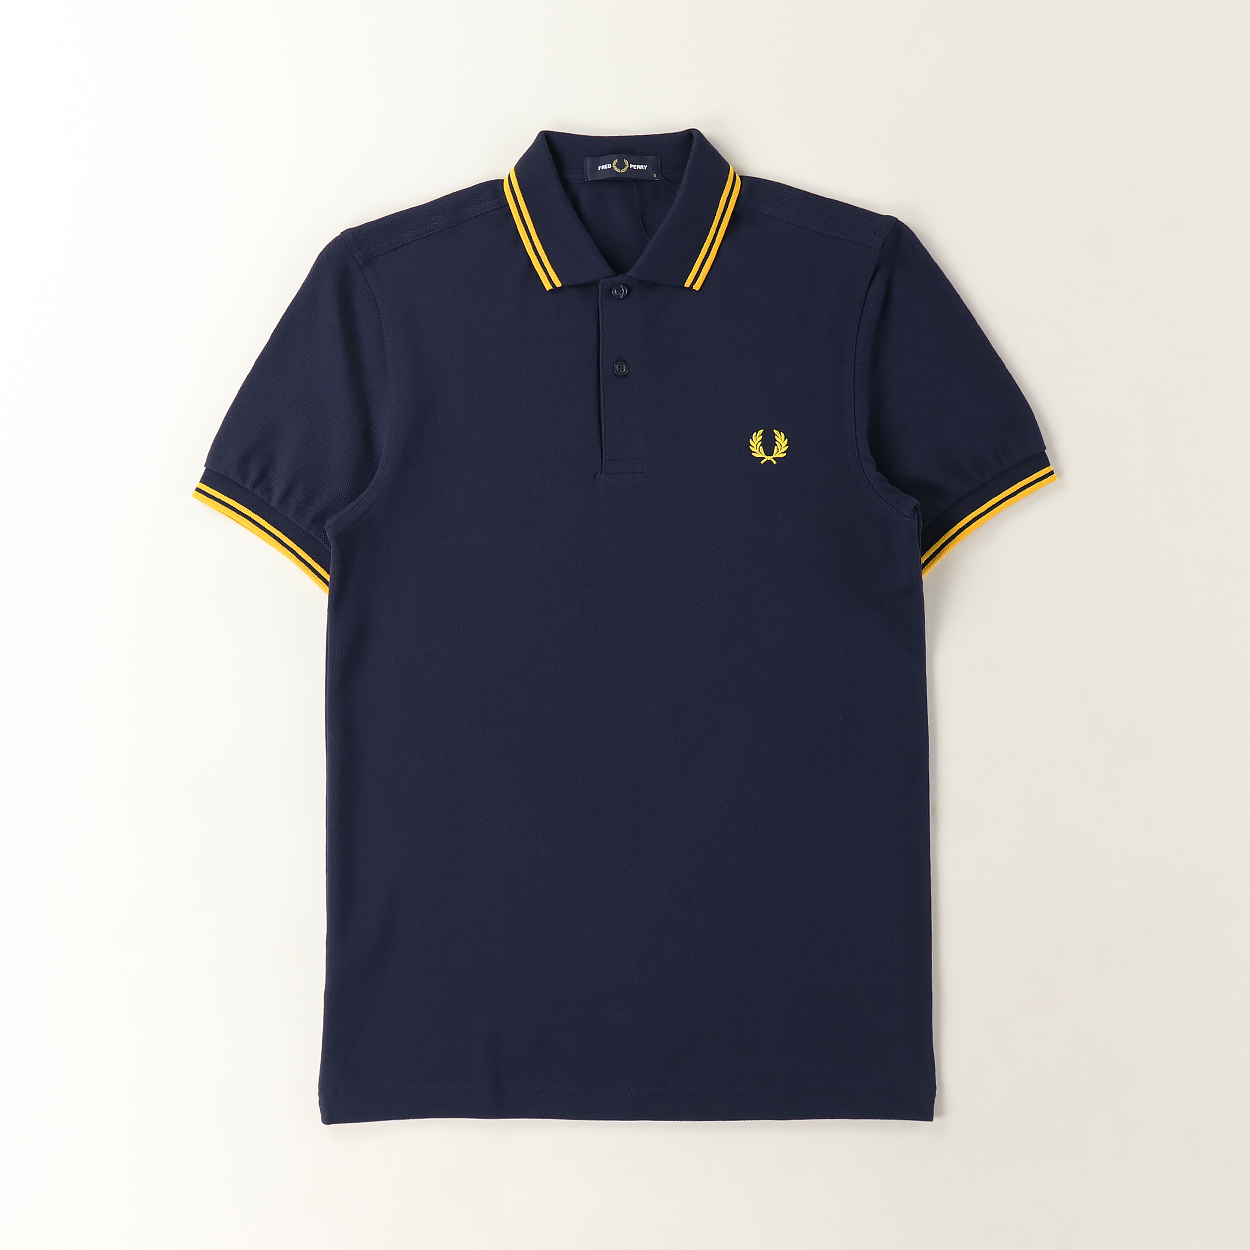 Fred Perry M3600 Twin Tipped Short Sleeve Polo Shirt Carbon Blue £47.08